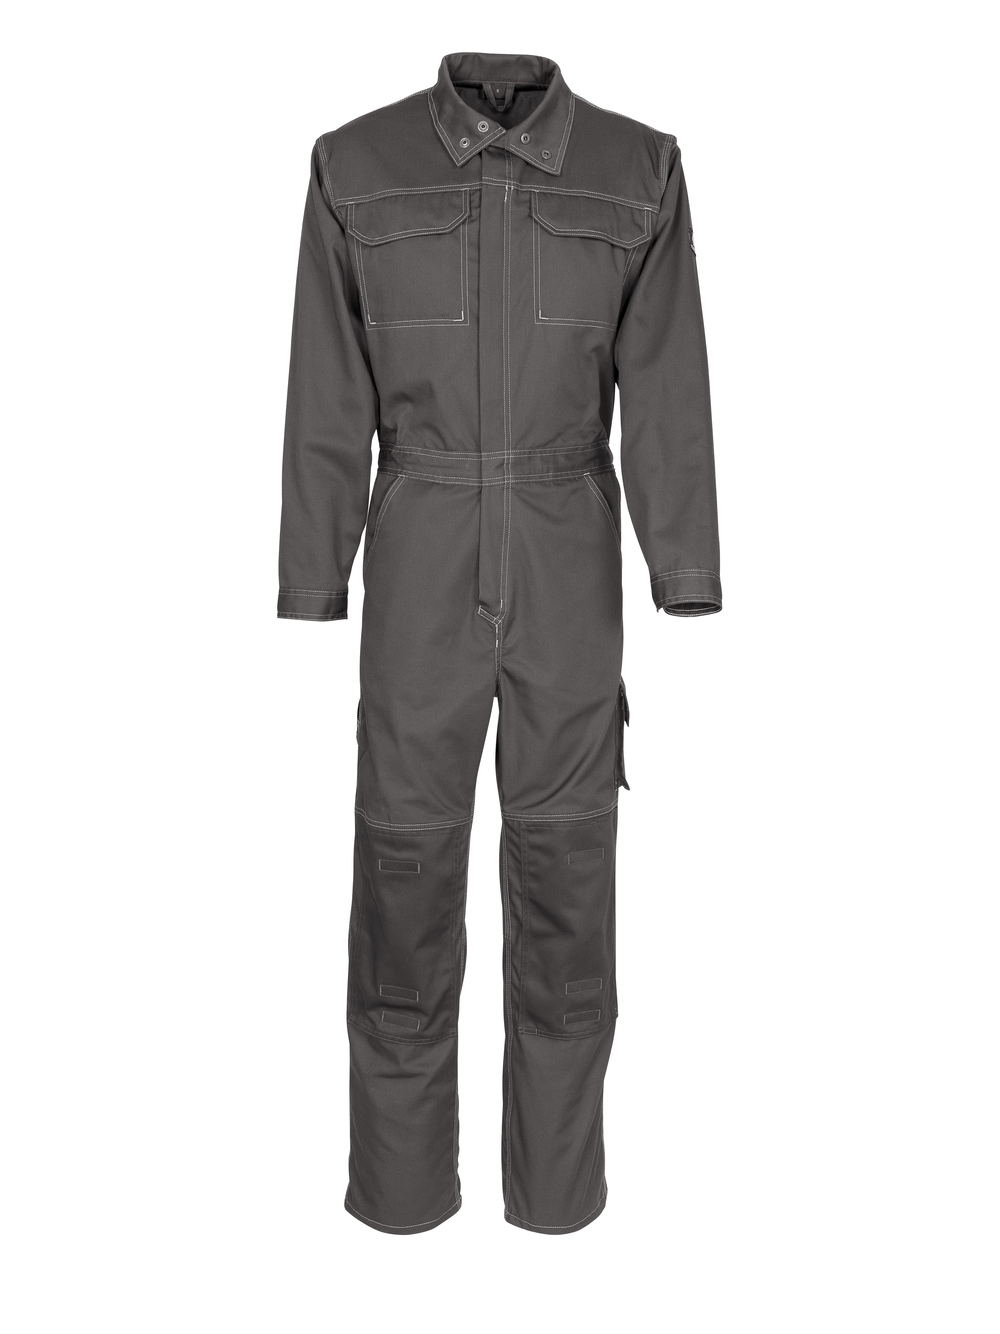 MASCOT DANVILLE BOILERSUIT